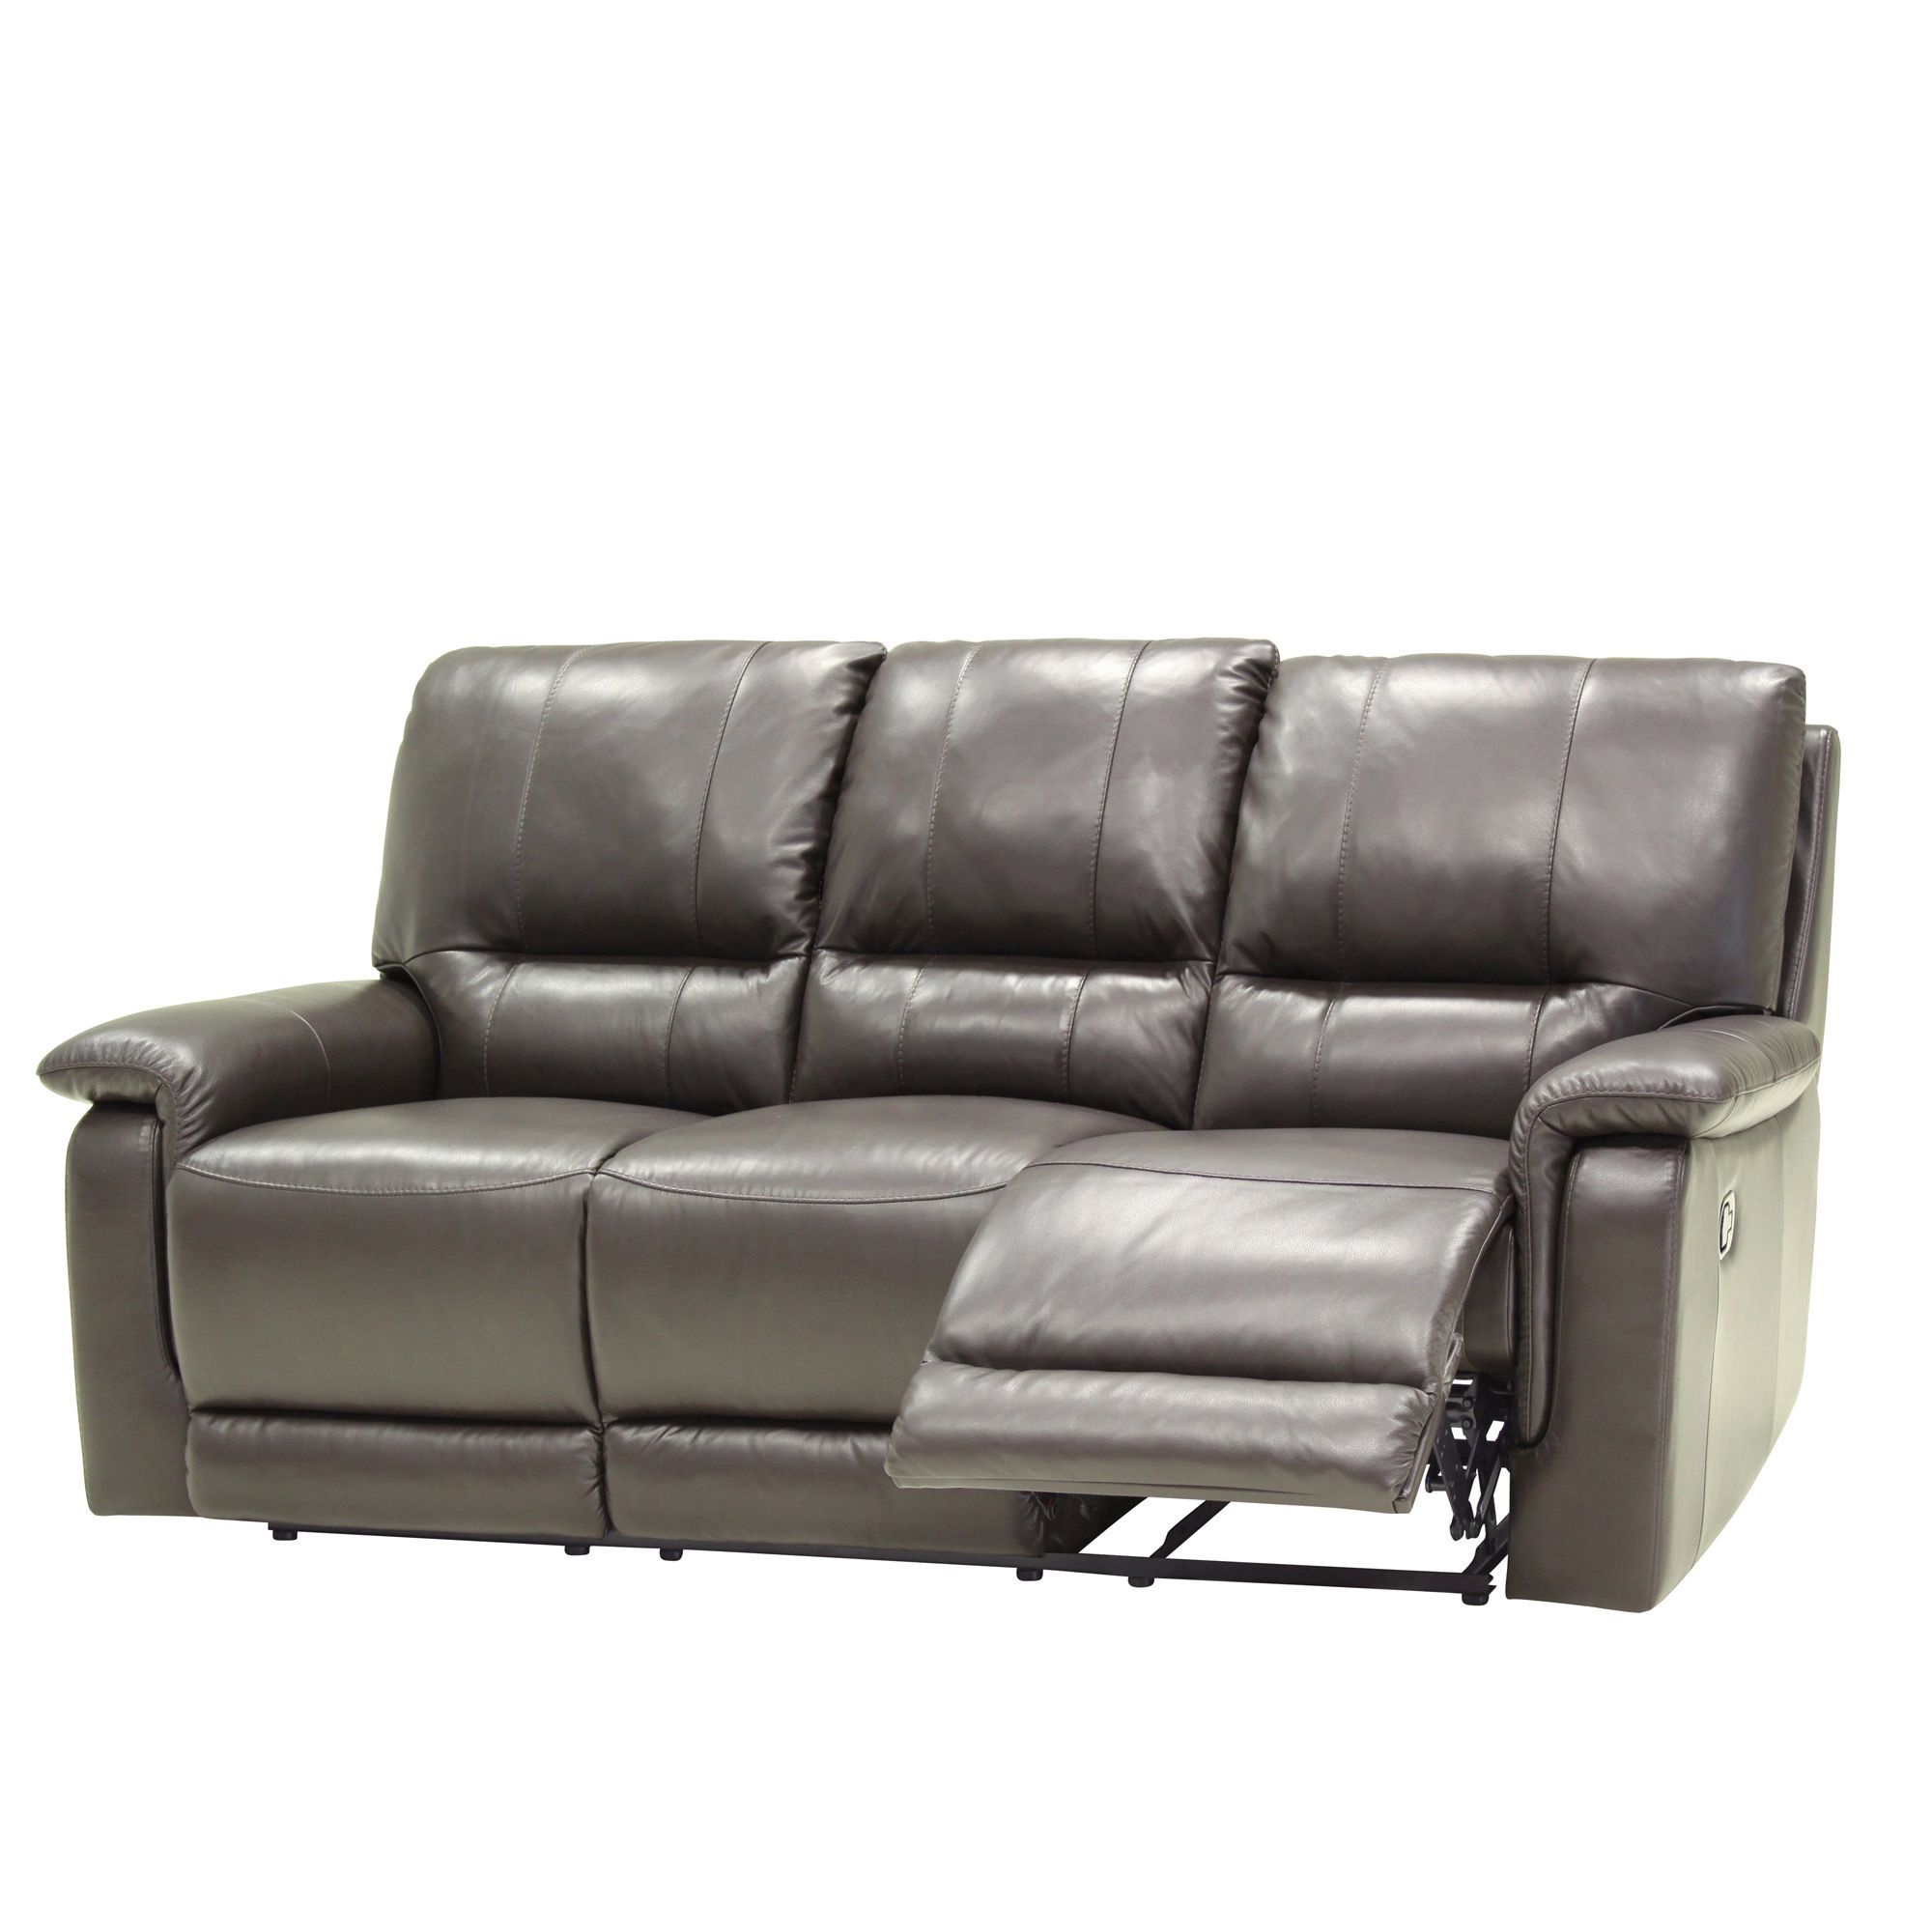 Cookes Collection Melbourne 3 Seater Electric Recliner